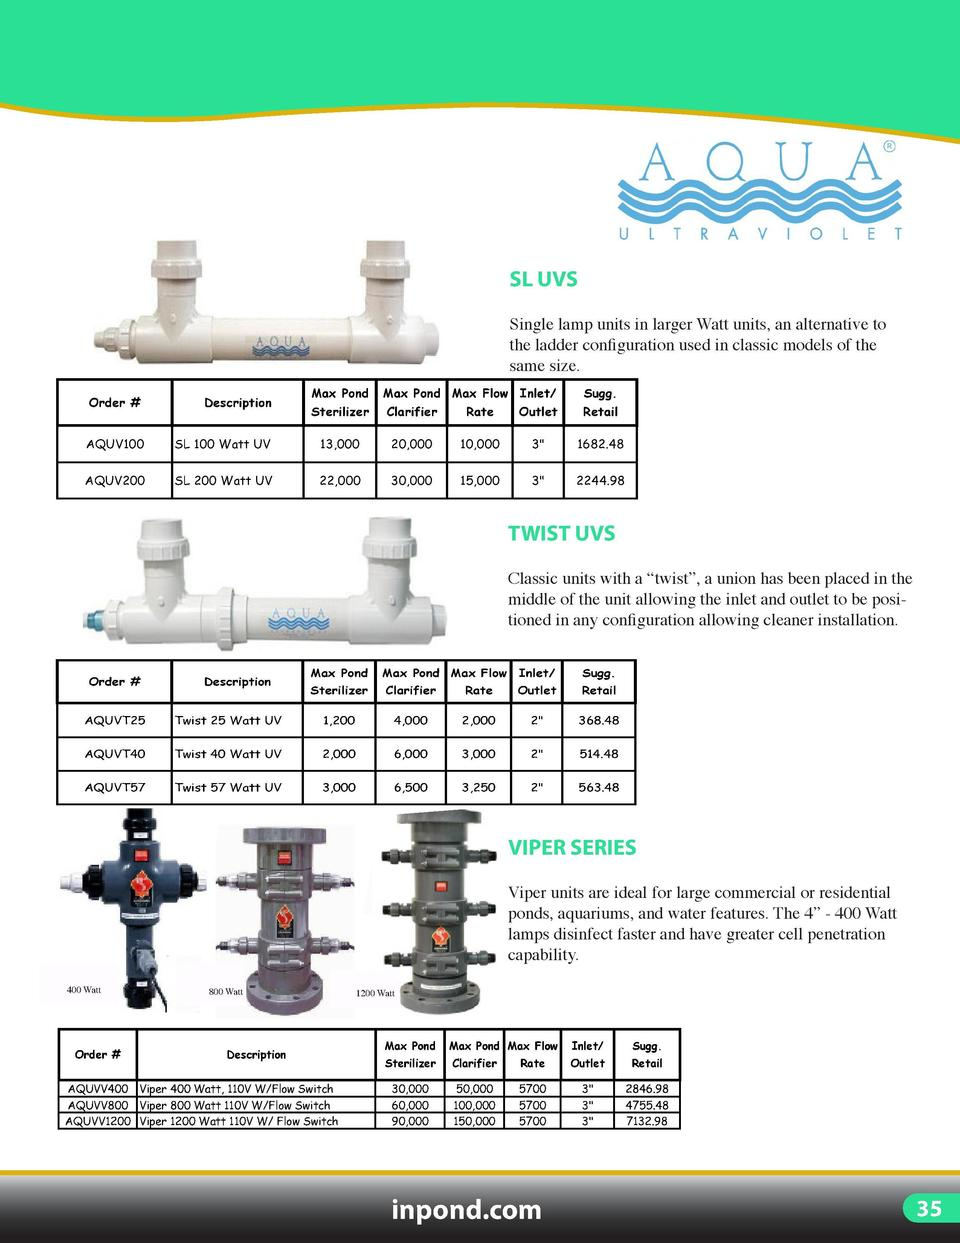 UV LIGHTING  ADVANTAGE UVS  SL UVS  Small compact units designed for small ponds and aquariums.  Single lamp units in larg...